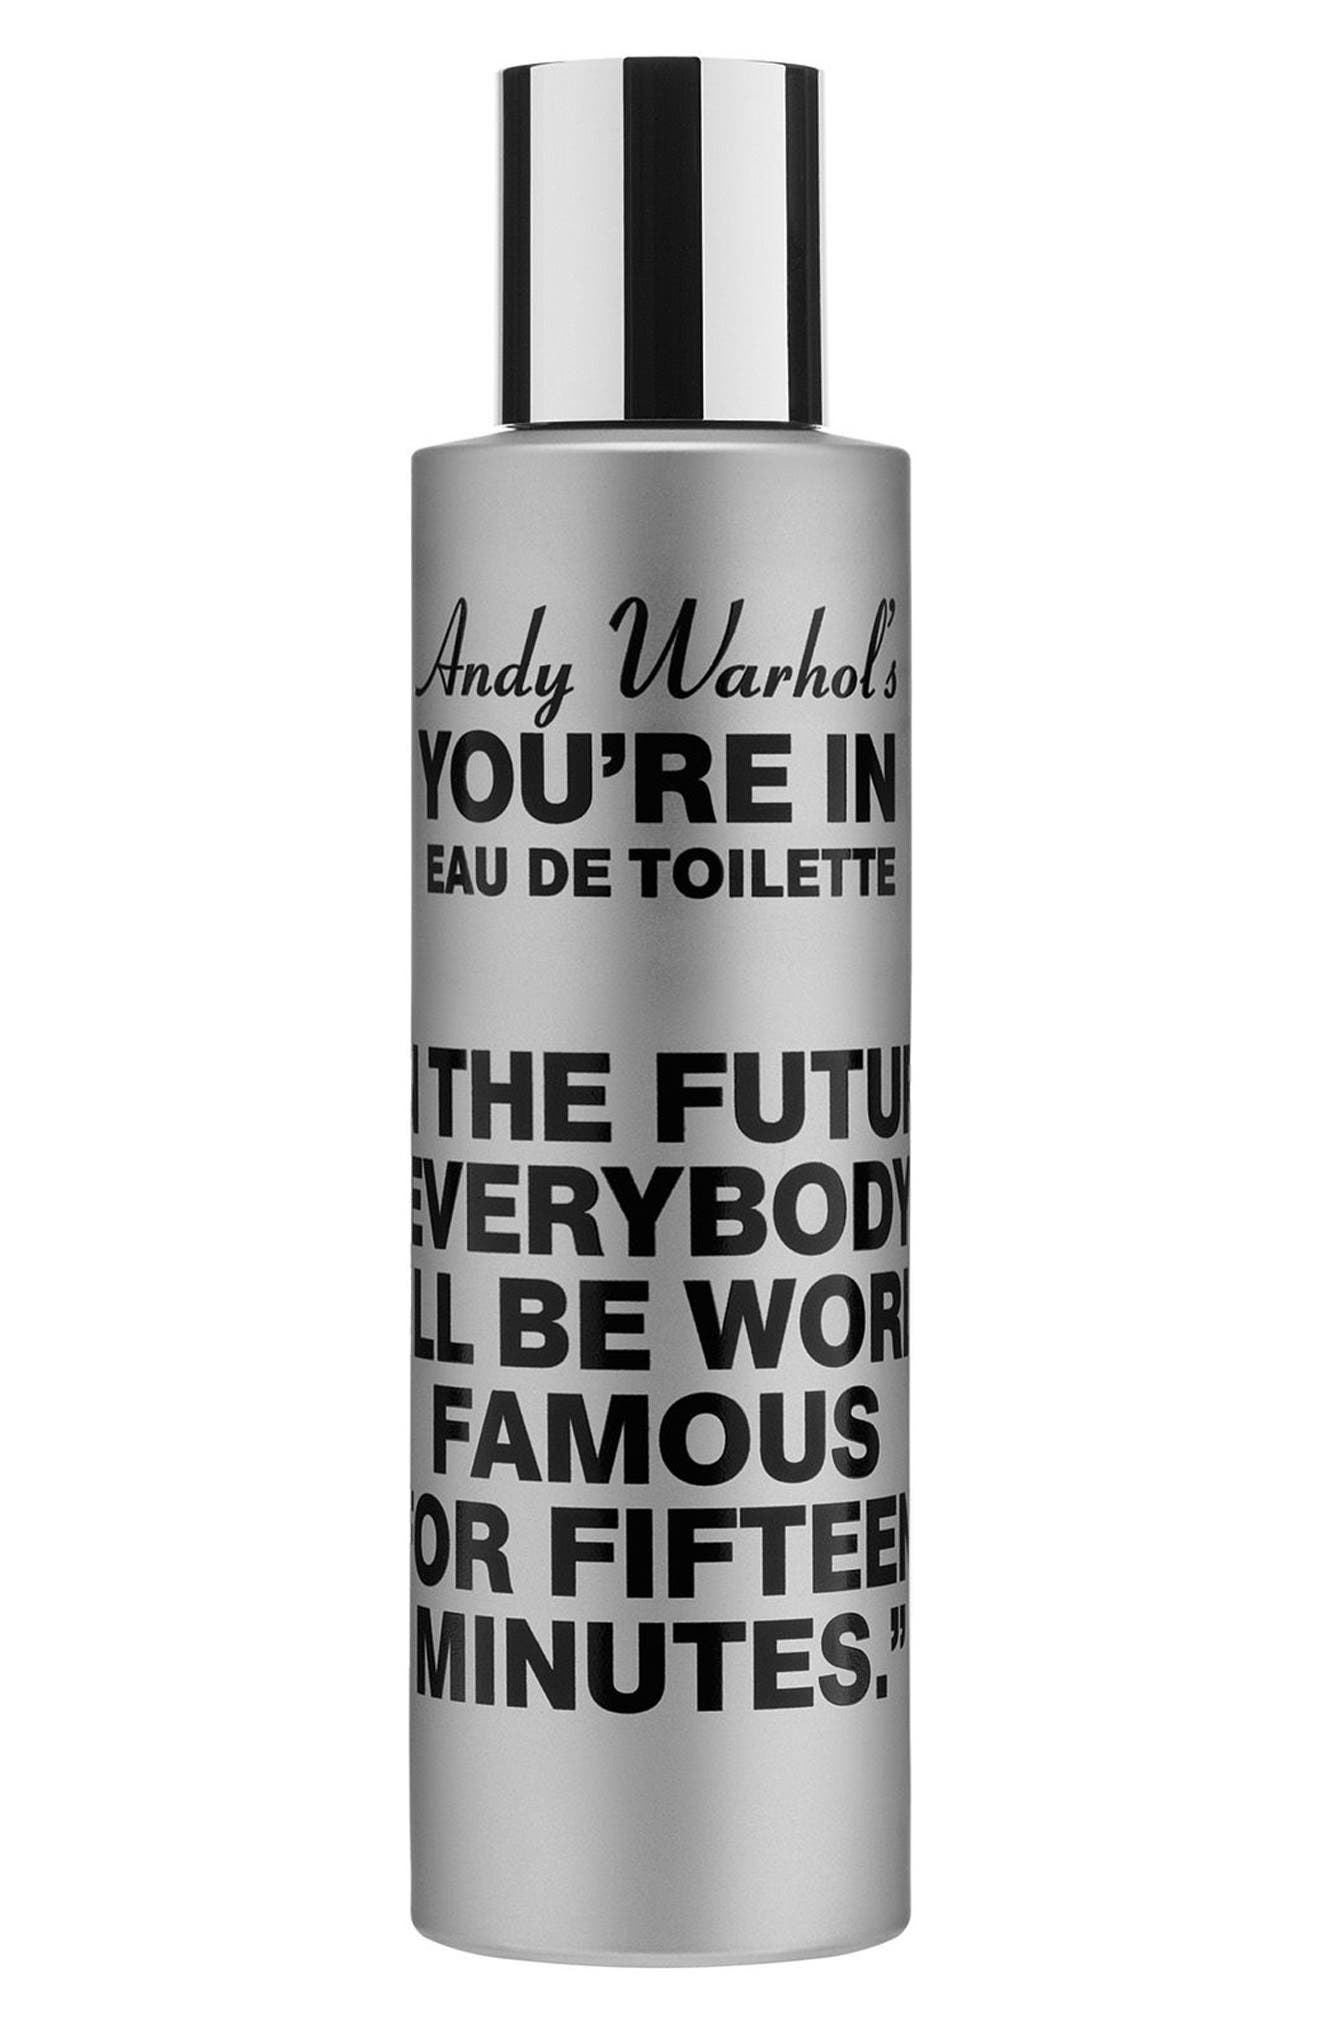 COMME DES GARÇONS Andy Warhol You're In Unisex Eau de Toilette, Main, color, IN THE FUTURE